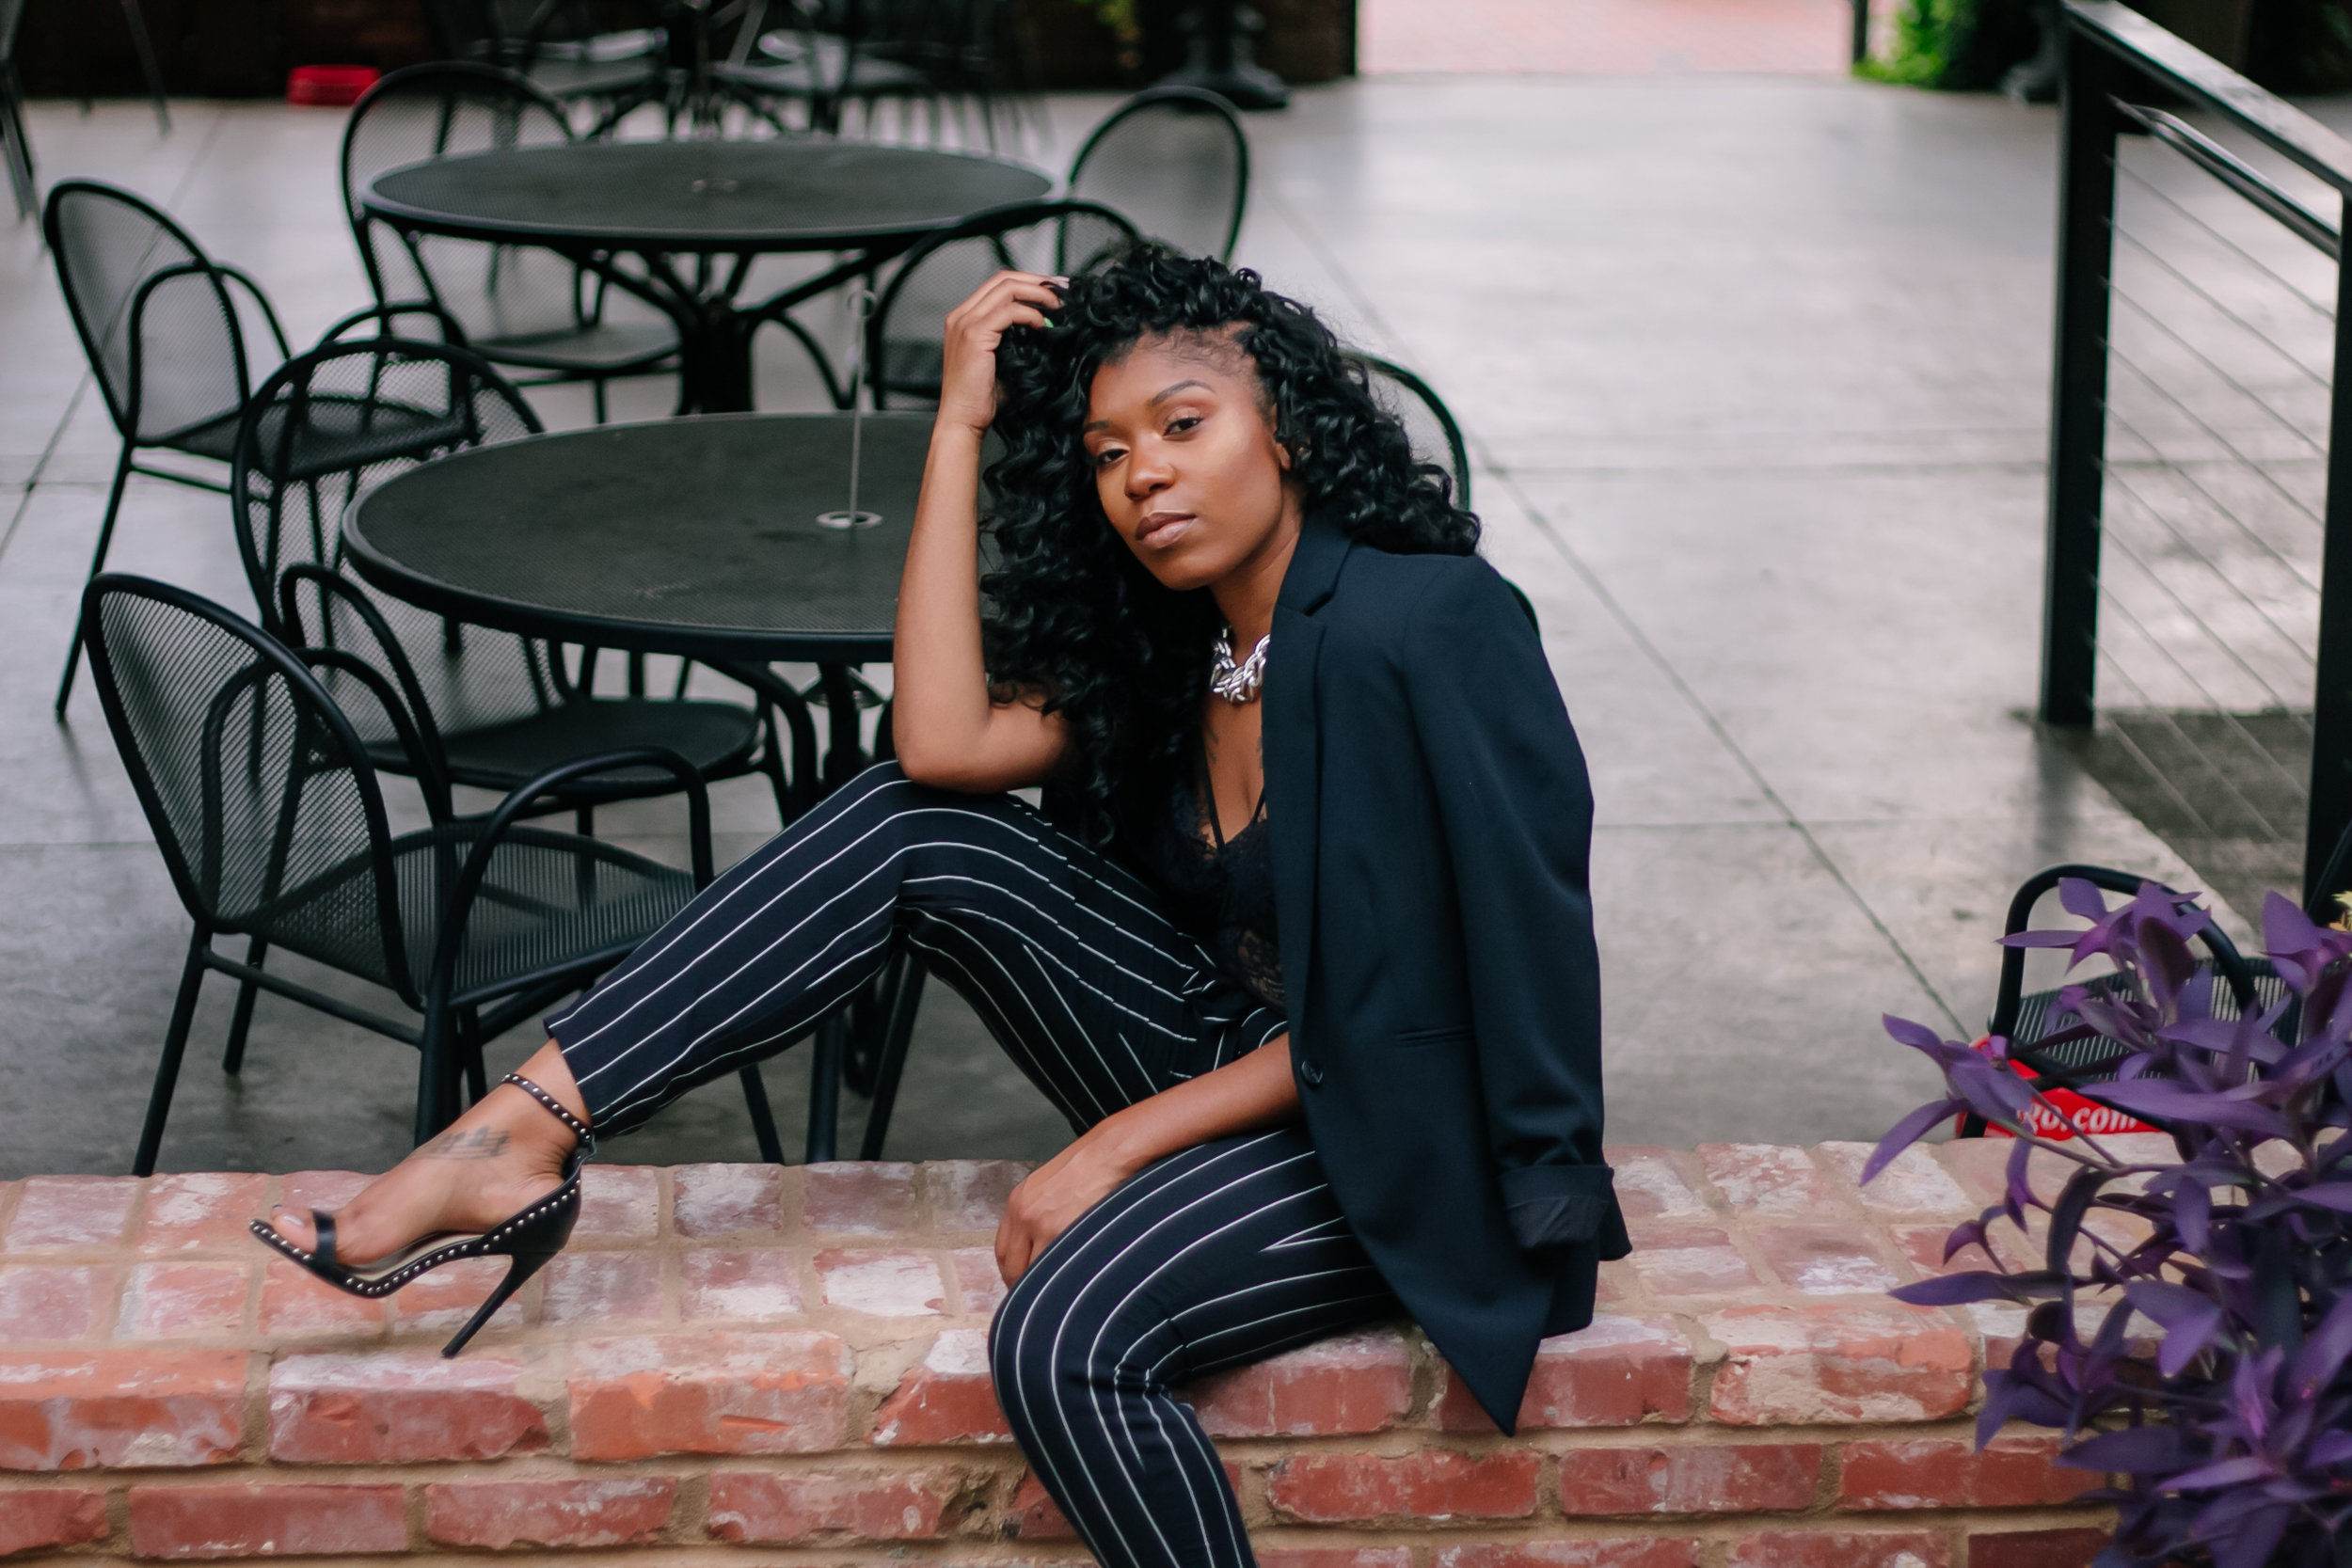 """Boss babe: beauty amour - Shaunell Davis: """"I was so nervous to do my photoshoot, since I hadn't been in front of the camera in years. But after seeing my images, I was like WOW! It really helped me believe in myself again!"""""""